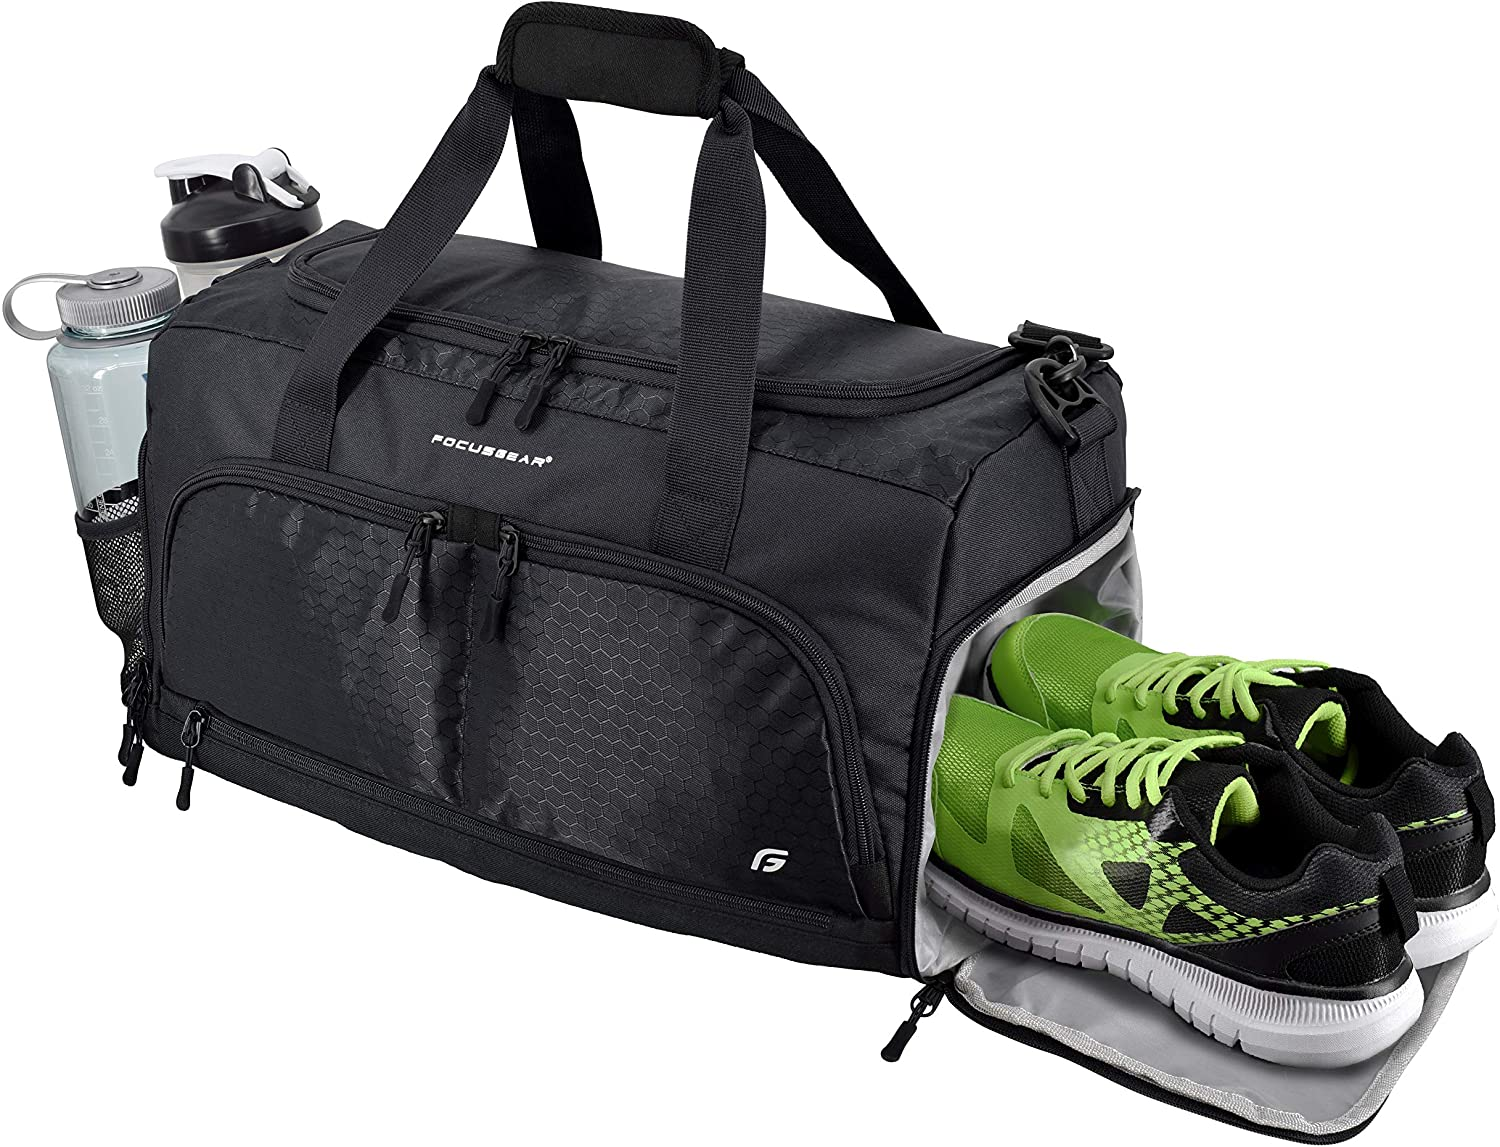 Various compartments in a sports gym bag